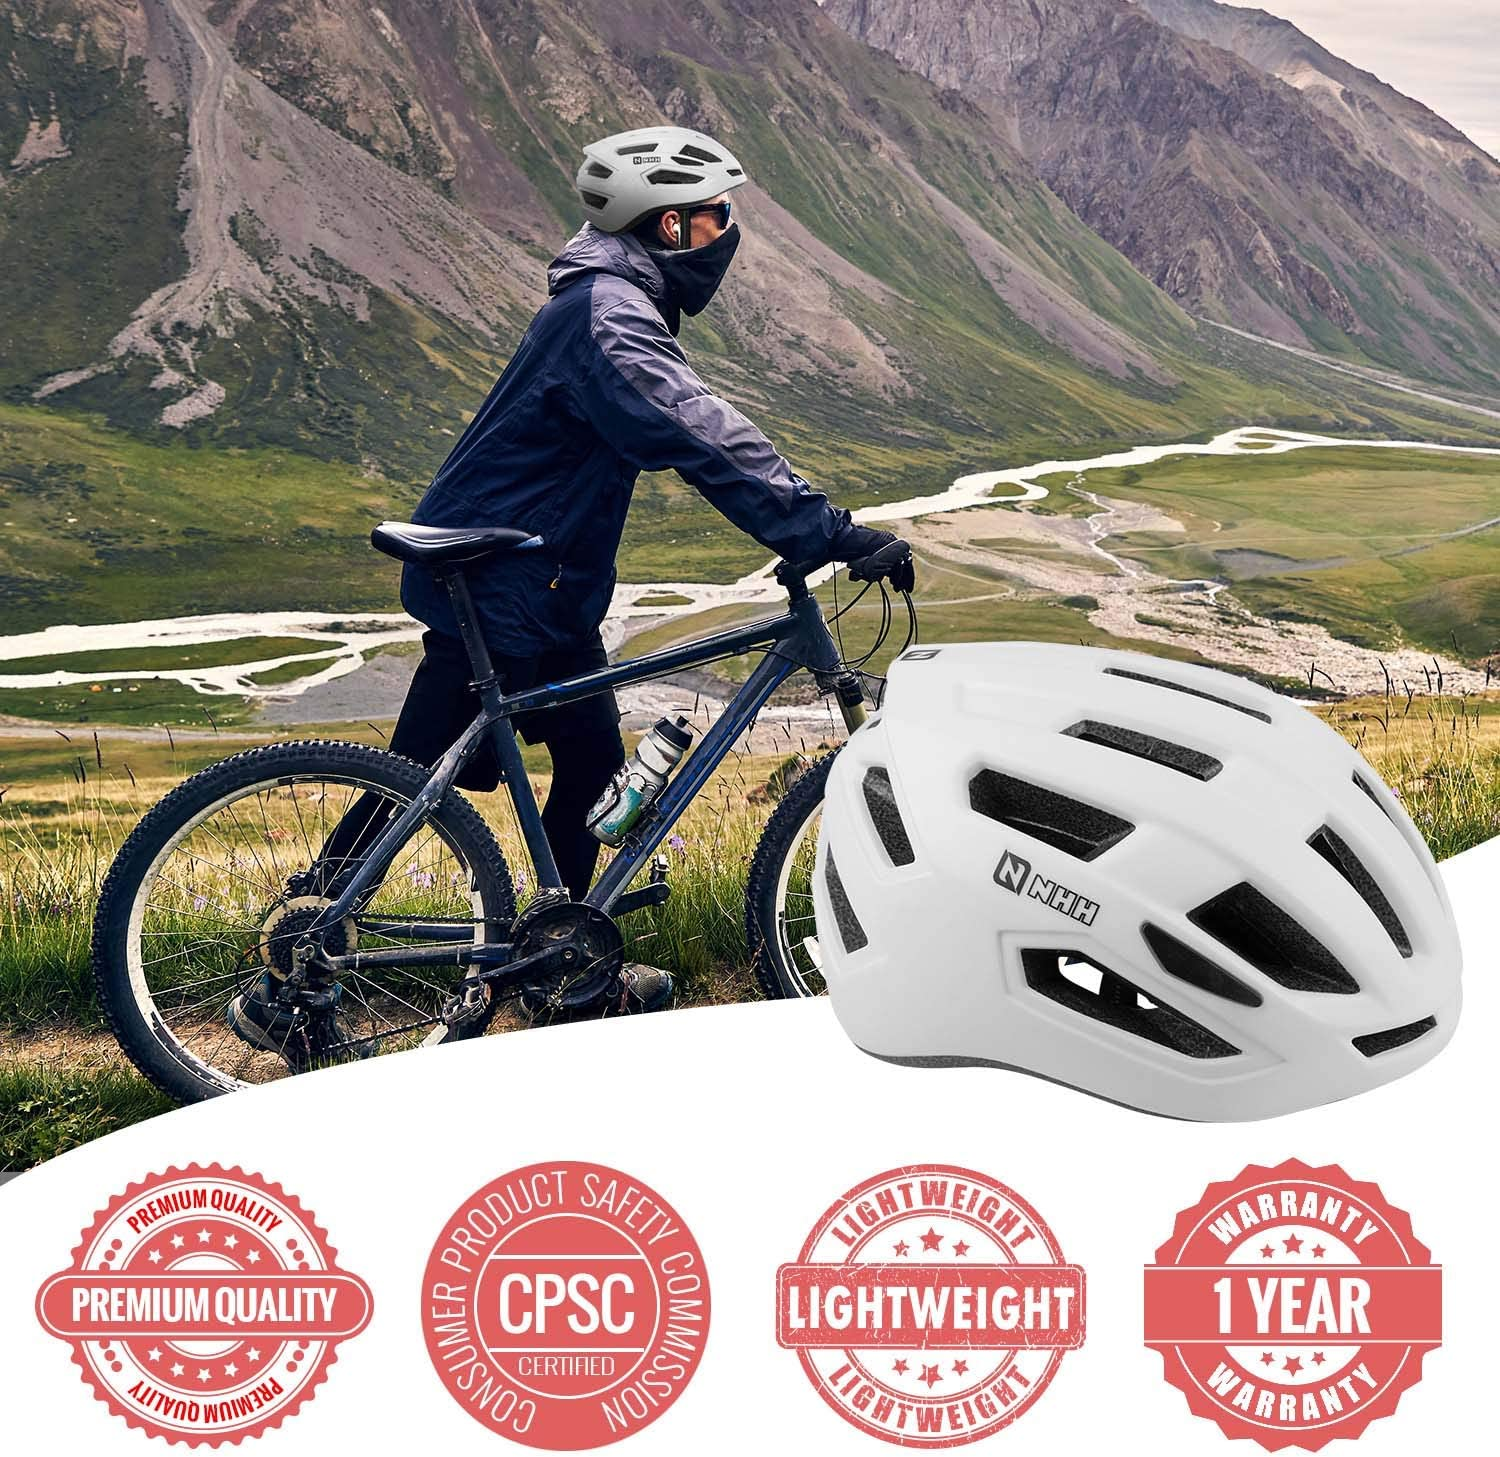 CPSC-Compliant Bicycle Cycling Helmet Lightweight Breathable and Adjustable Helmet for Men and Women Commuters and Road Cycling NHH Adult Bike Helmet